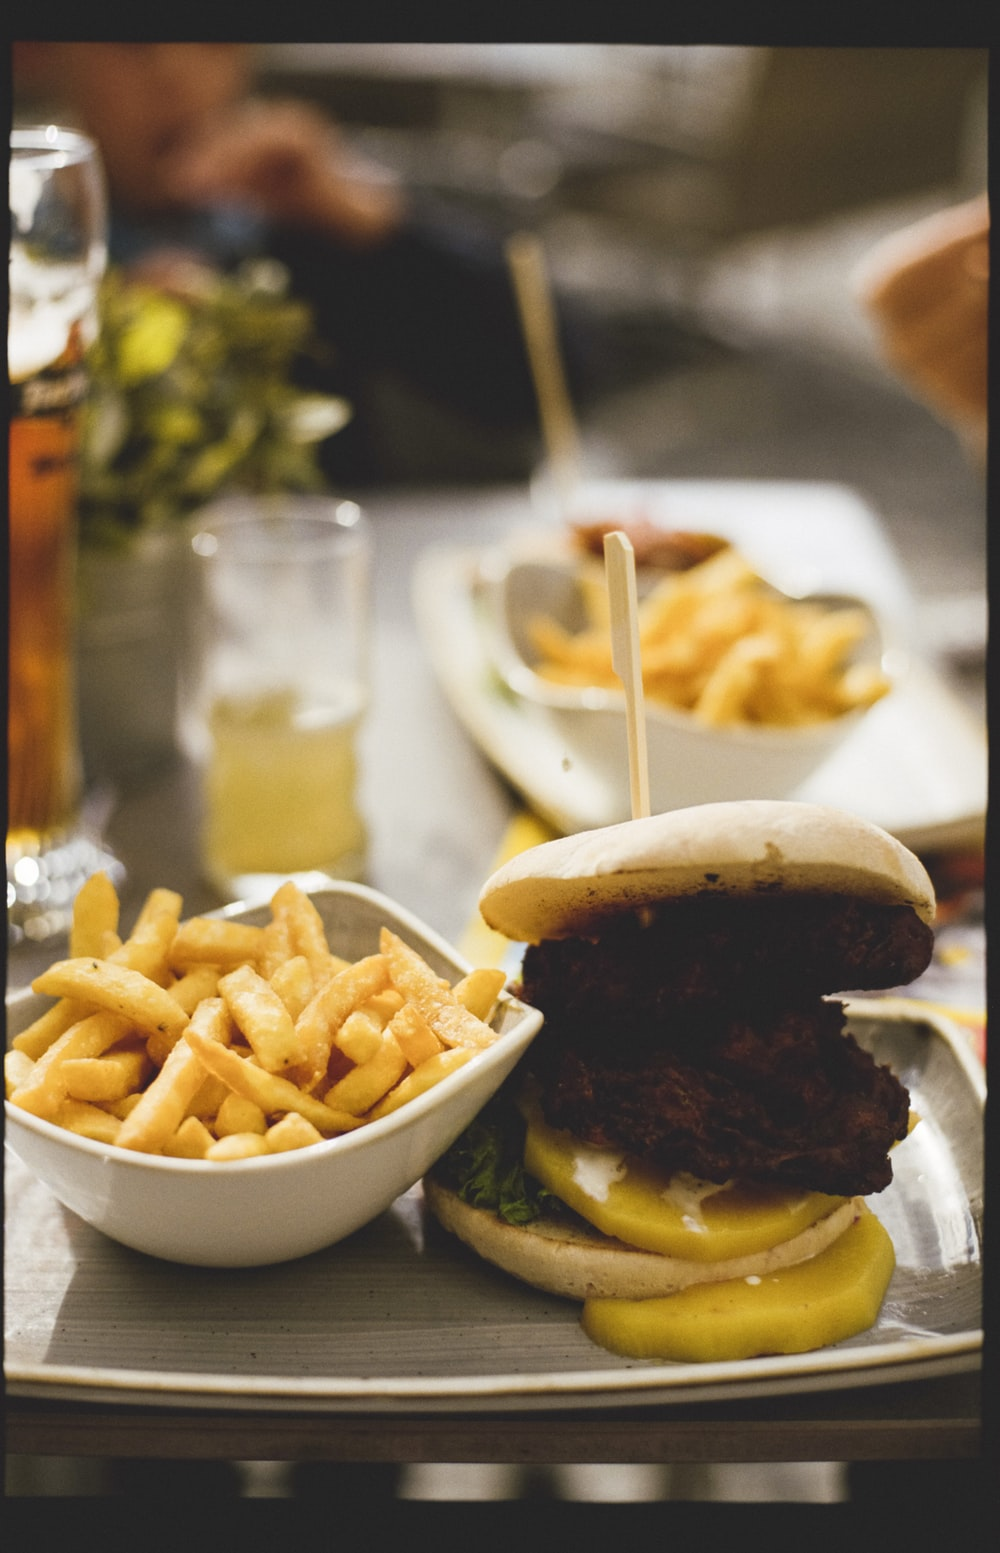 burger with fries on white ceramic plate